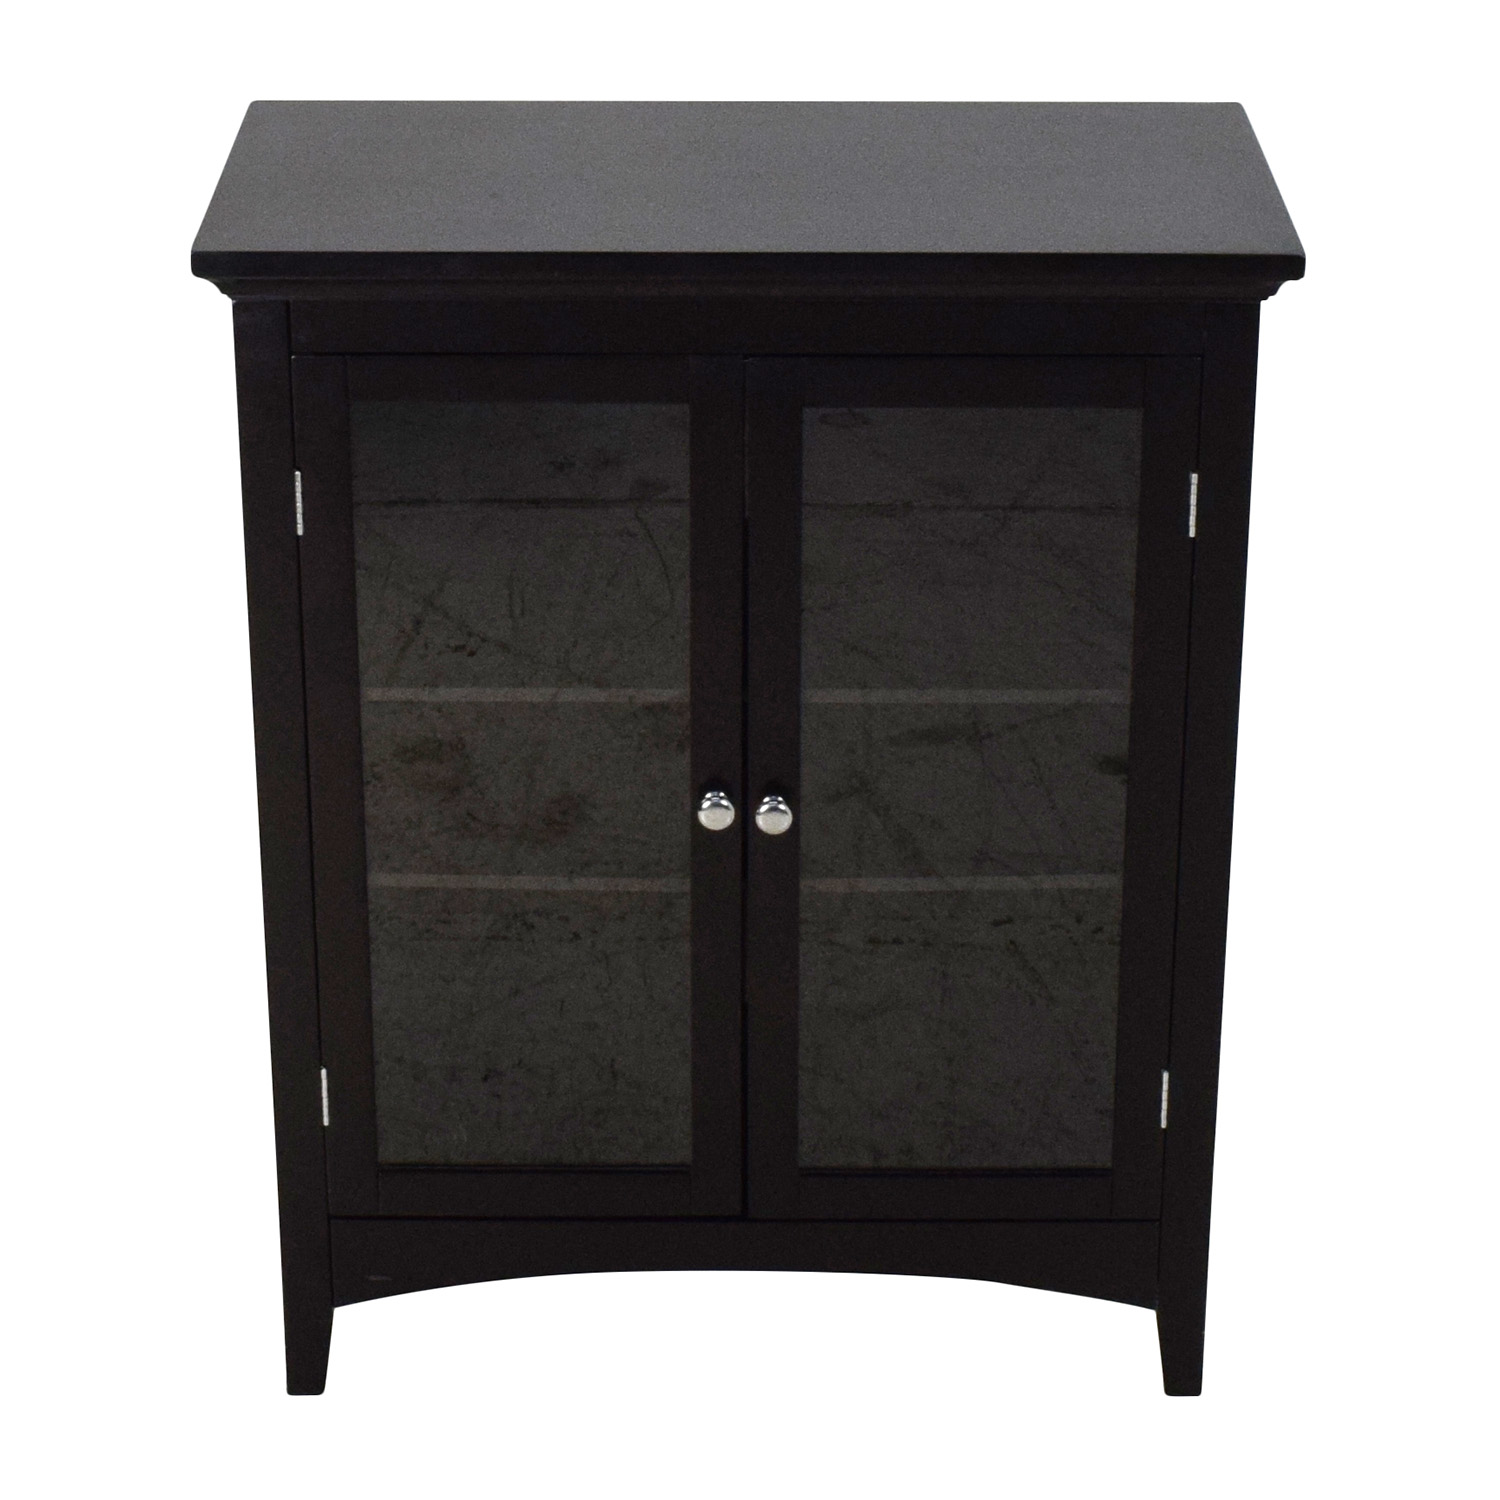 off dark brown glass door cabinet storage end table with the living room lexington cherry dining set inch round top leather sofa design kmart night legs black plastic side ikea